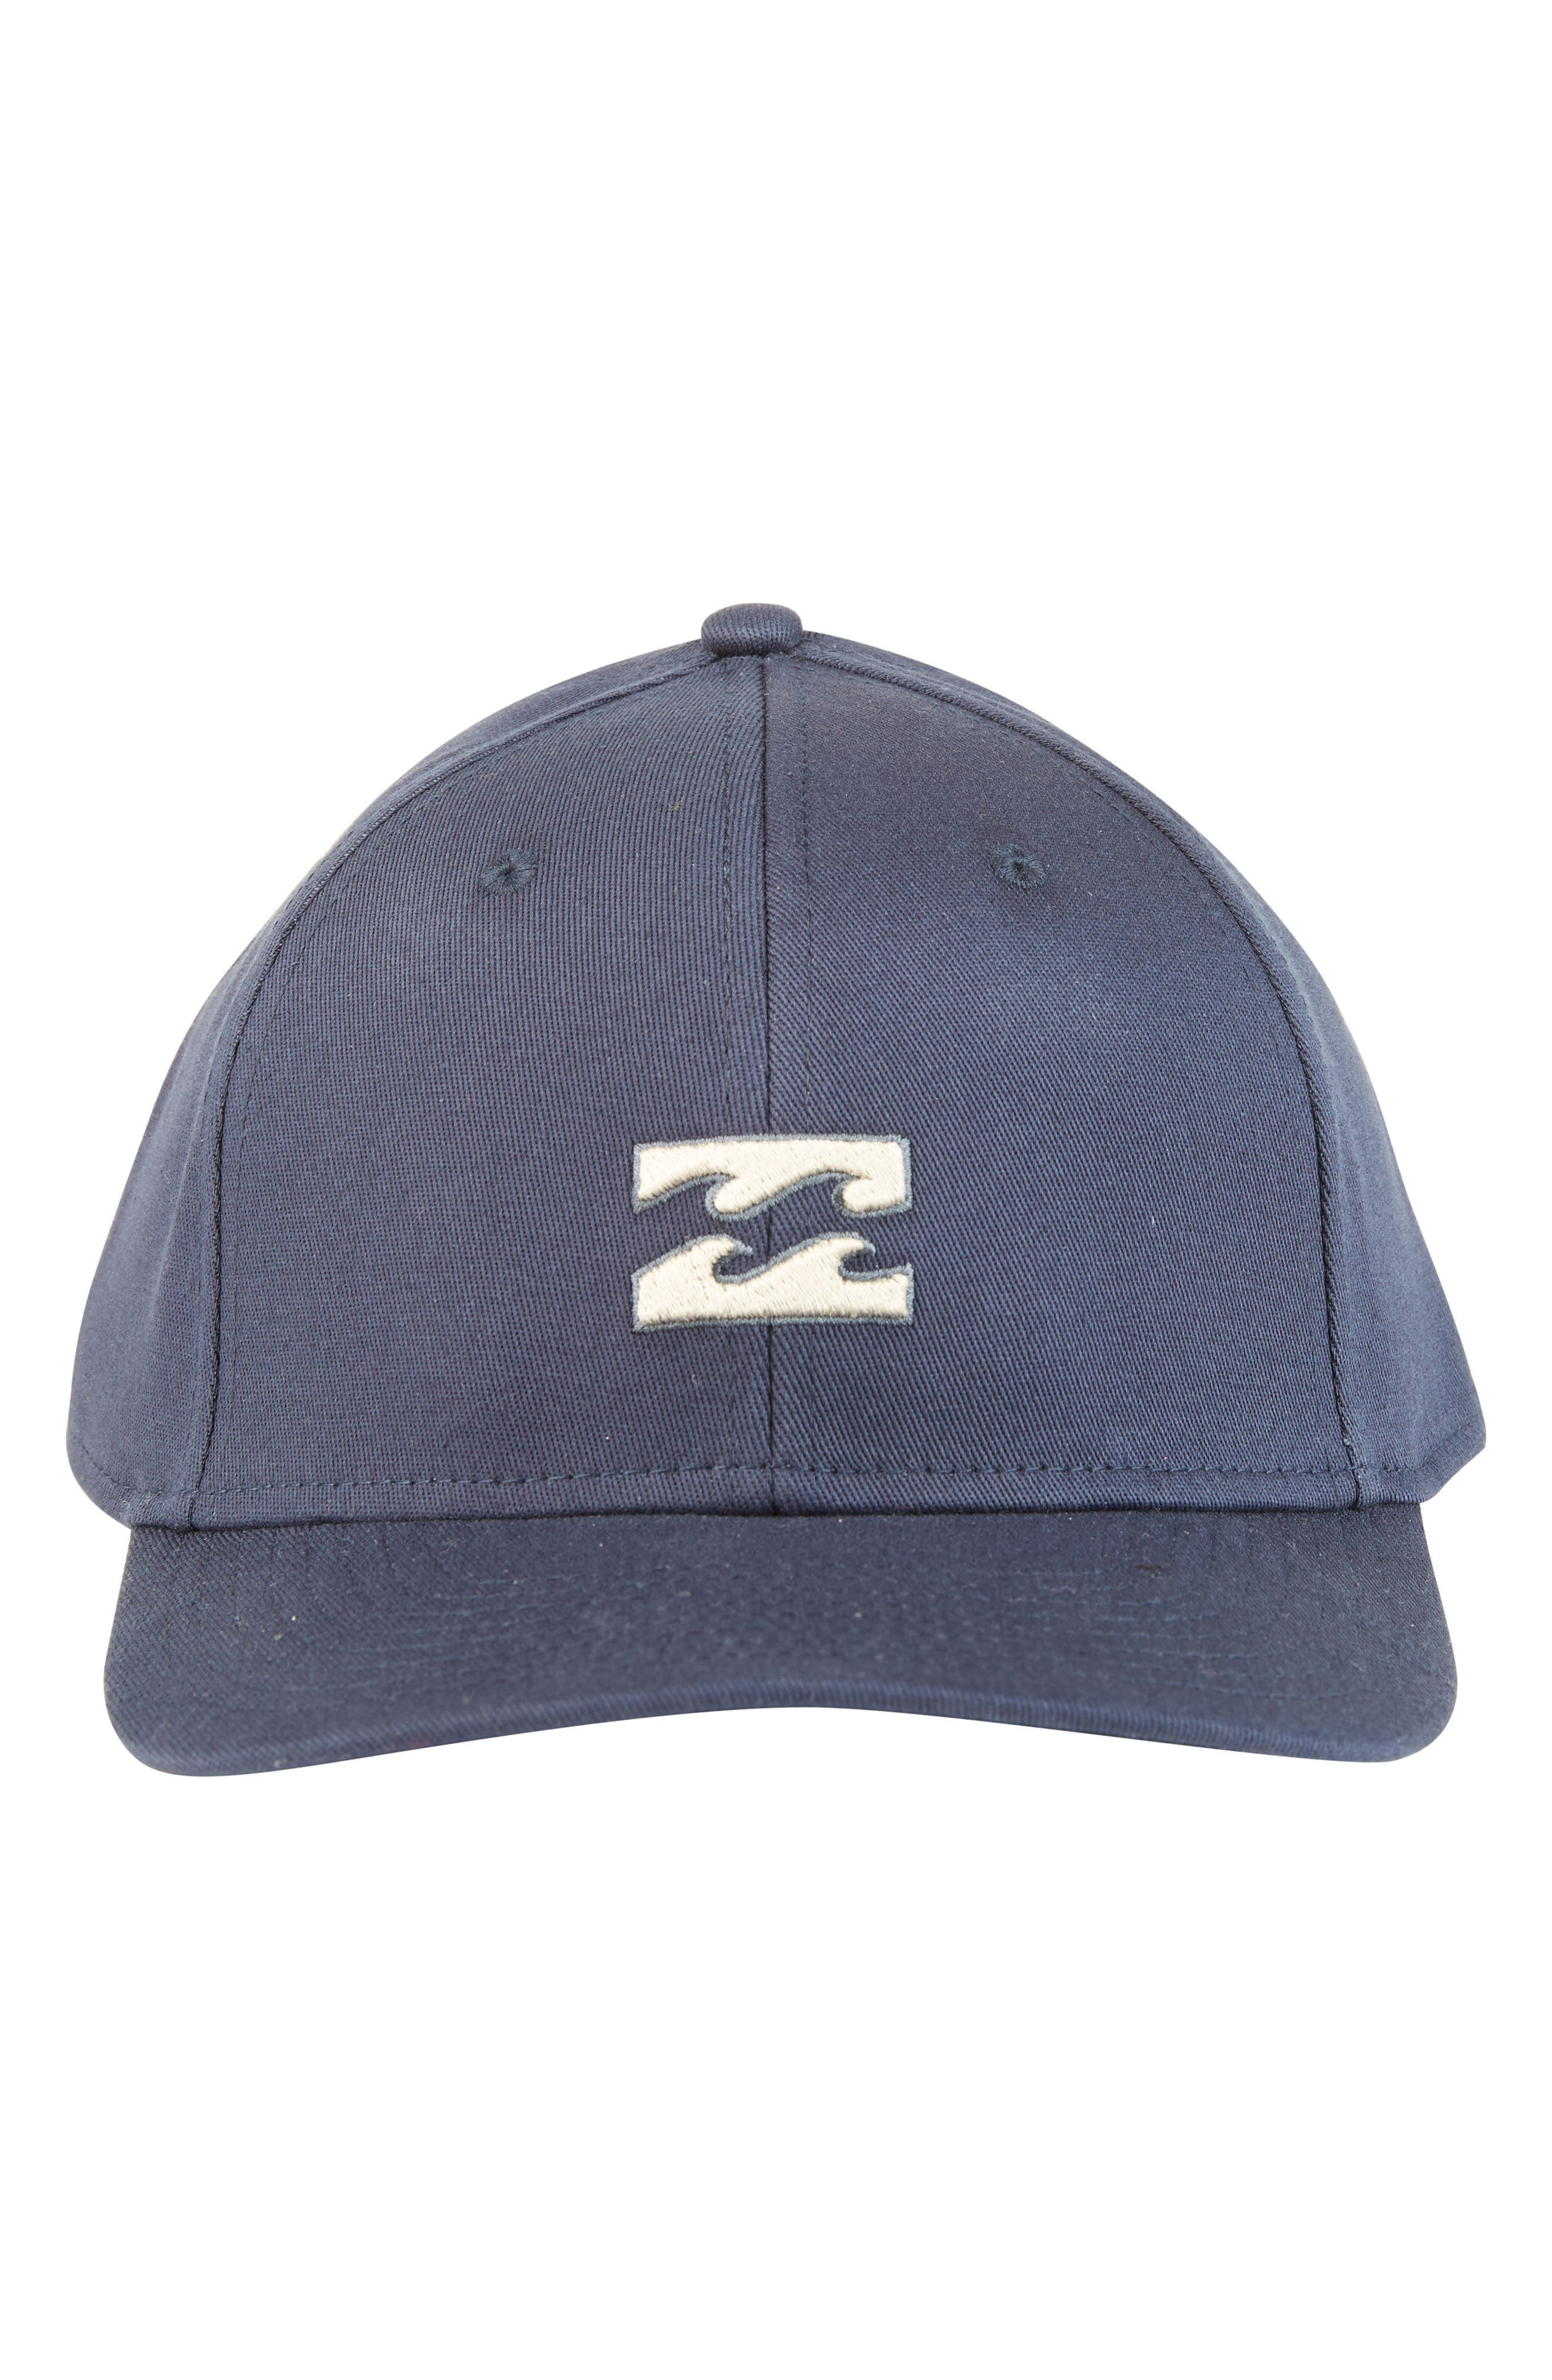 All Day Stretch Baseball Cap,                             Alternate thumbnail 2, color,                             NAVY